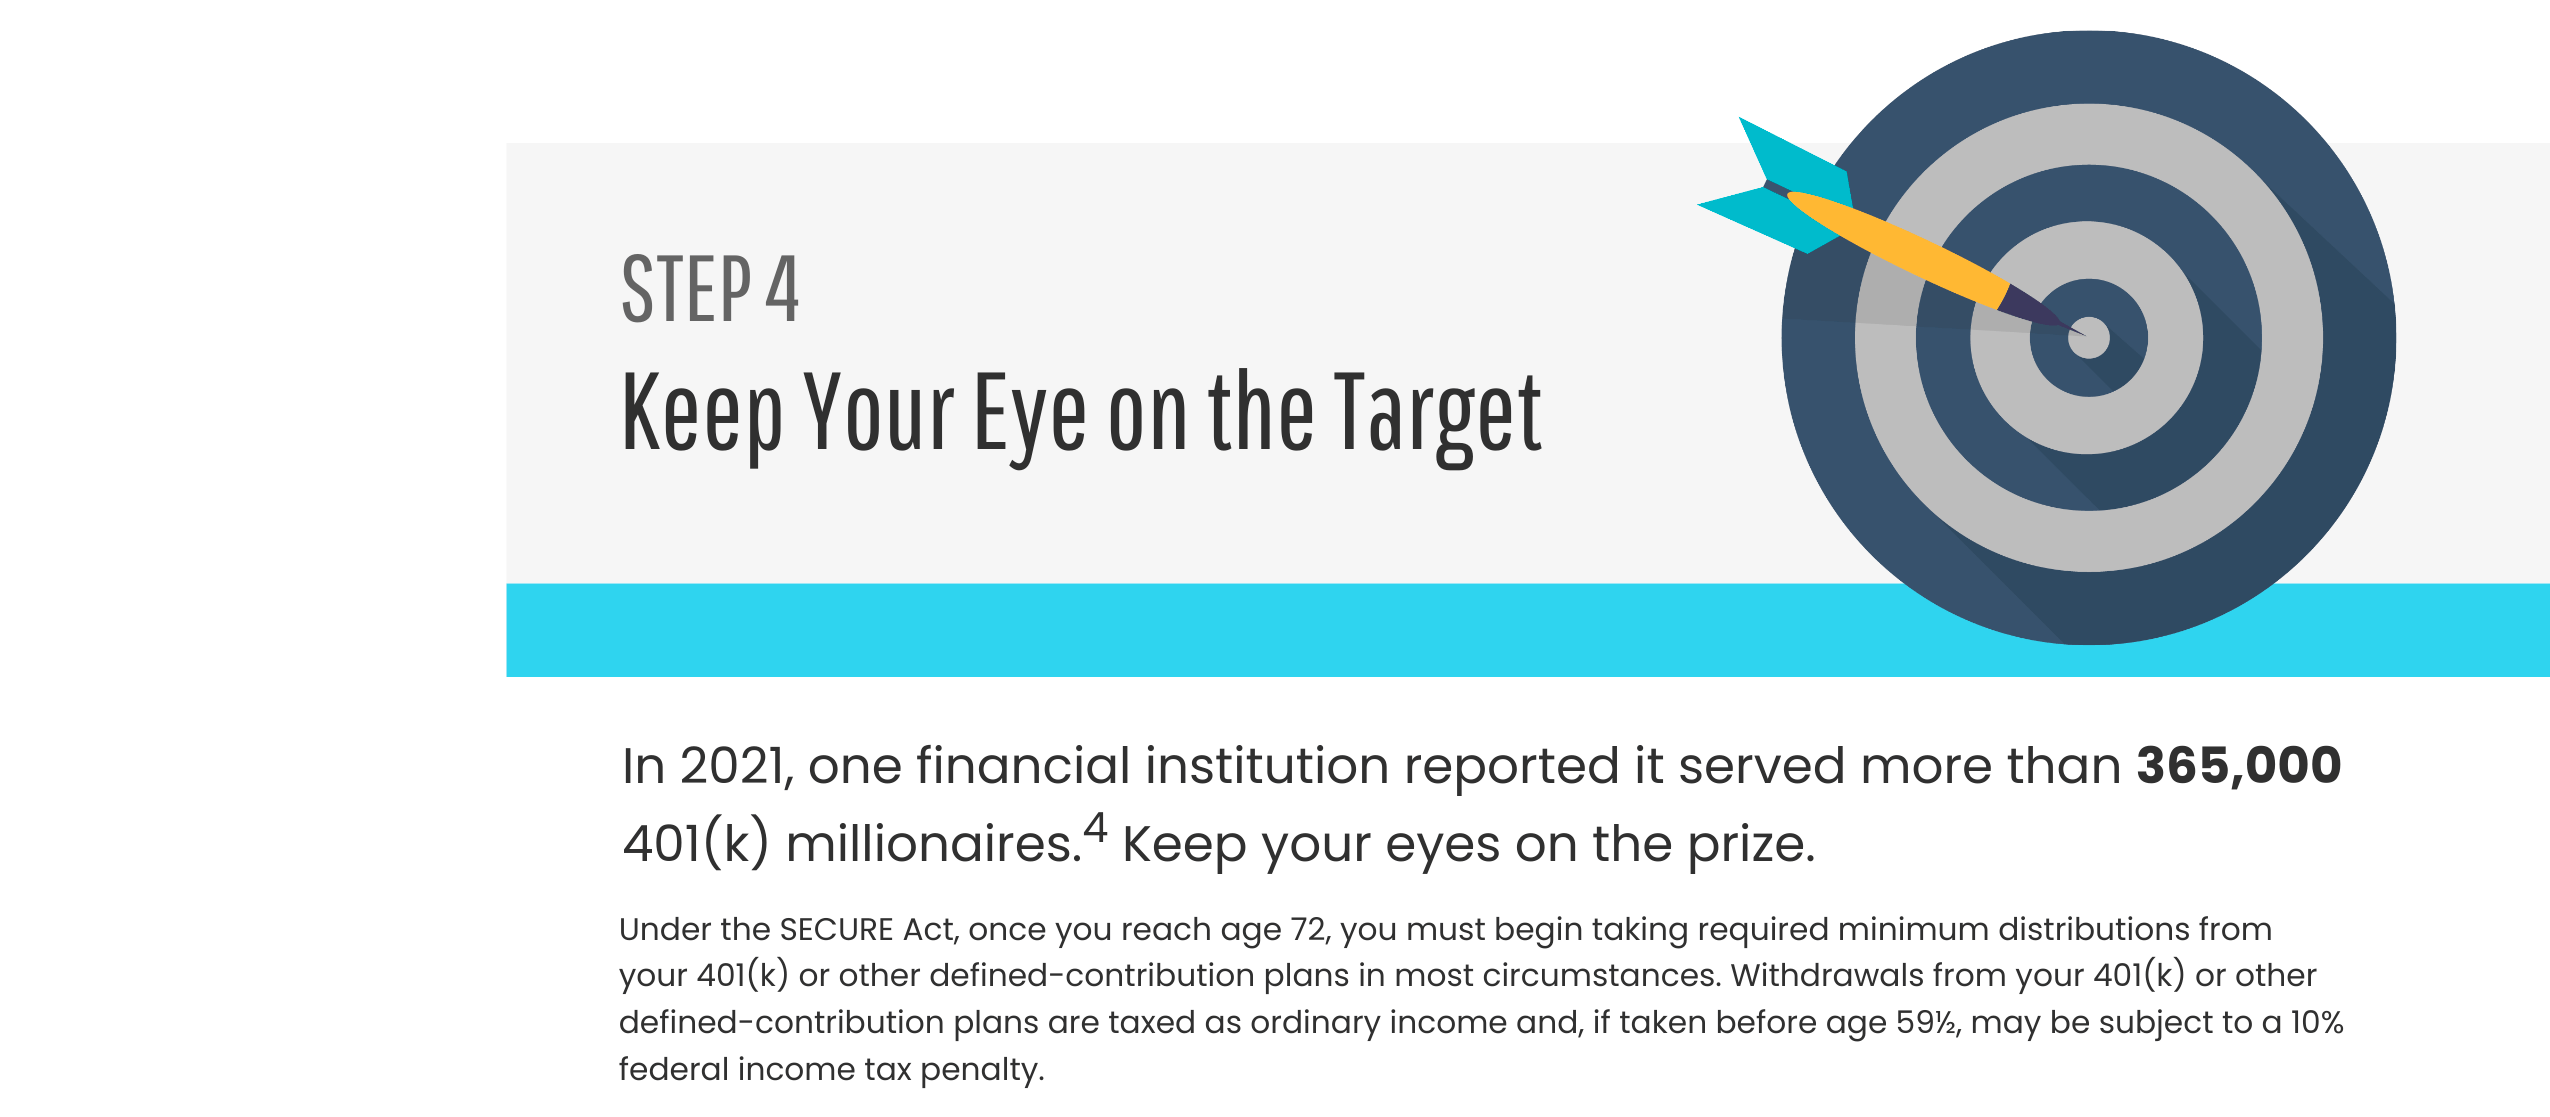 Step 4: Keep Your Eye on the Target. In 2021, one financial institution reported it served more than 365,000 401(k) millionaires.4 Keep your eyes on the prize. Under the SECURE Act, once you reach age 72, you must begin taking required minimum distributions from your 401(k) or other defined-contribution plans in most circumstances. Withdrawals from your 401(k) or other defined-contribution plans taxes as ordinary income and, if taken before age 59½, may be subject to a 10% federal income tax penalty.